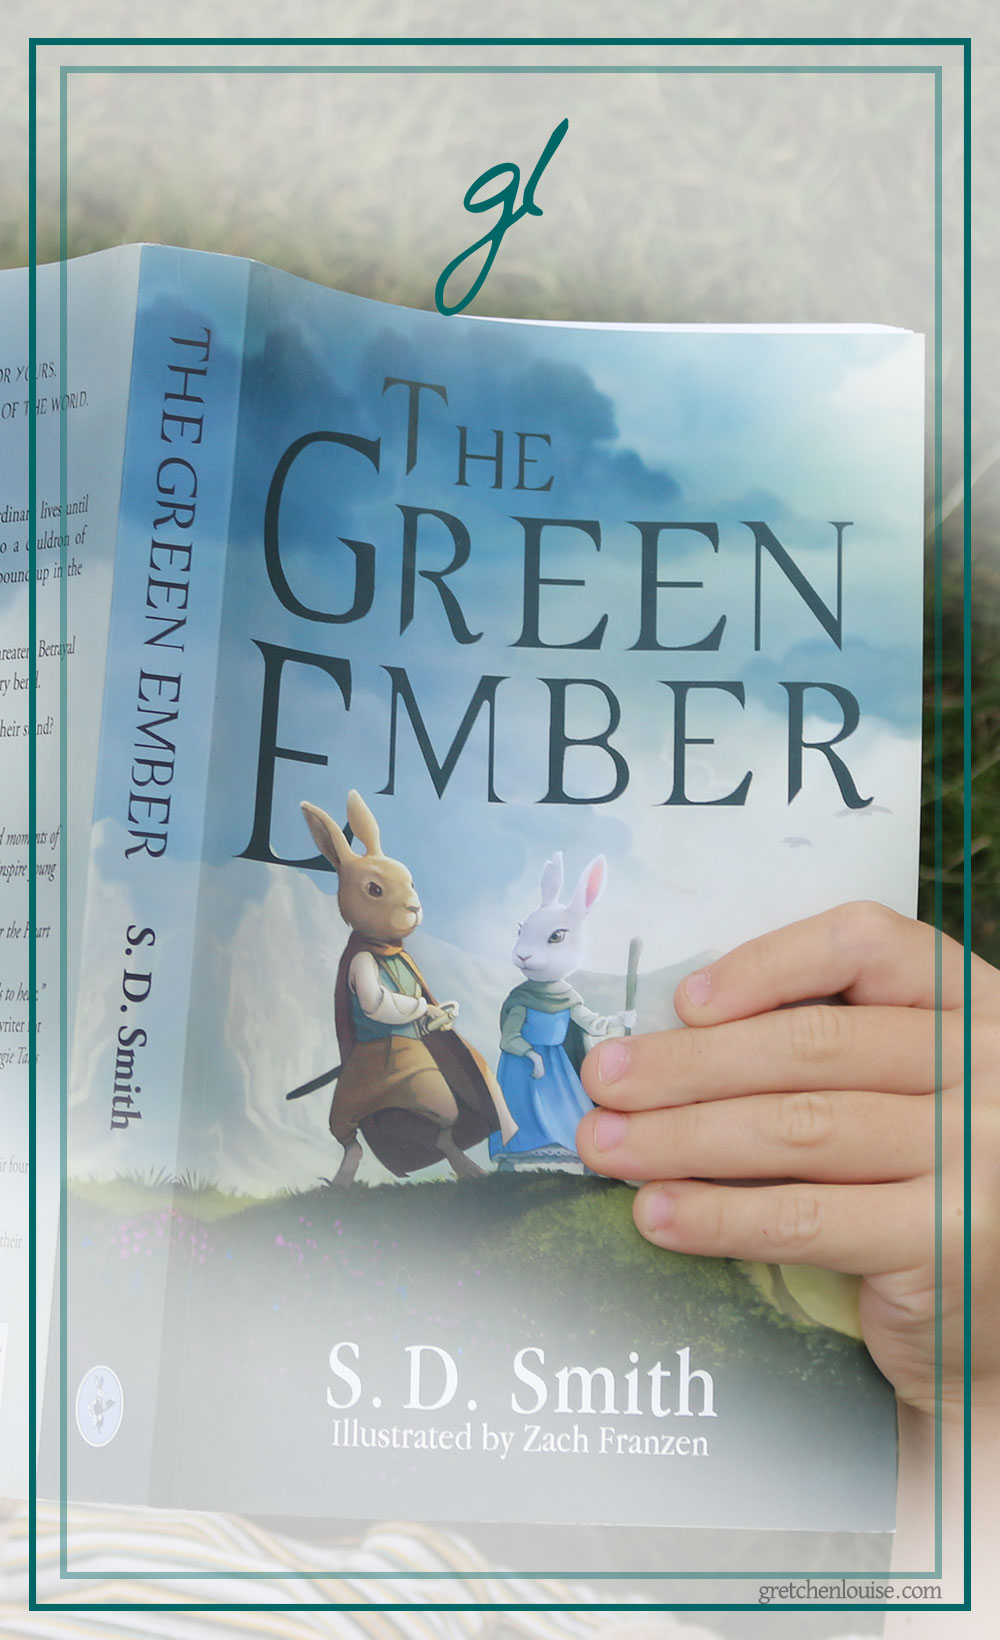 I suppose stories about rabbits are as old as they are beloved. There is Pat the Bunny, The Velveteen Rabbit, Peter Rabbit, Peter Cottontail, Br'er Rabbit, and Uncle Wiggily to name just a few. But these classic children's stories about rabbits have a new companion that numbers among our family's very favorites: The Green Ember by S.D. Smith. And these rabbits have swords. via @GretLouise